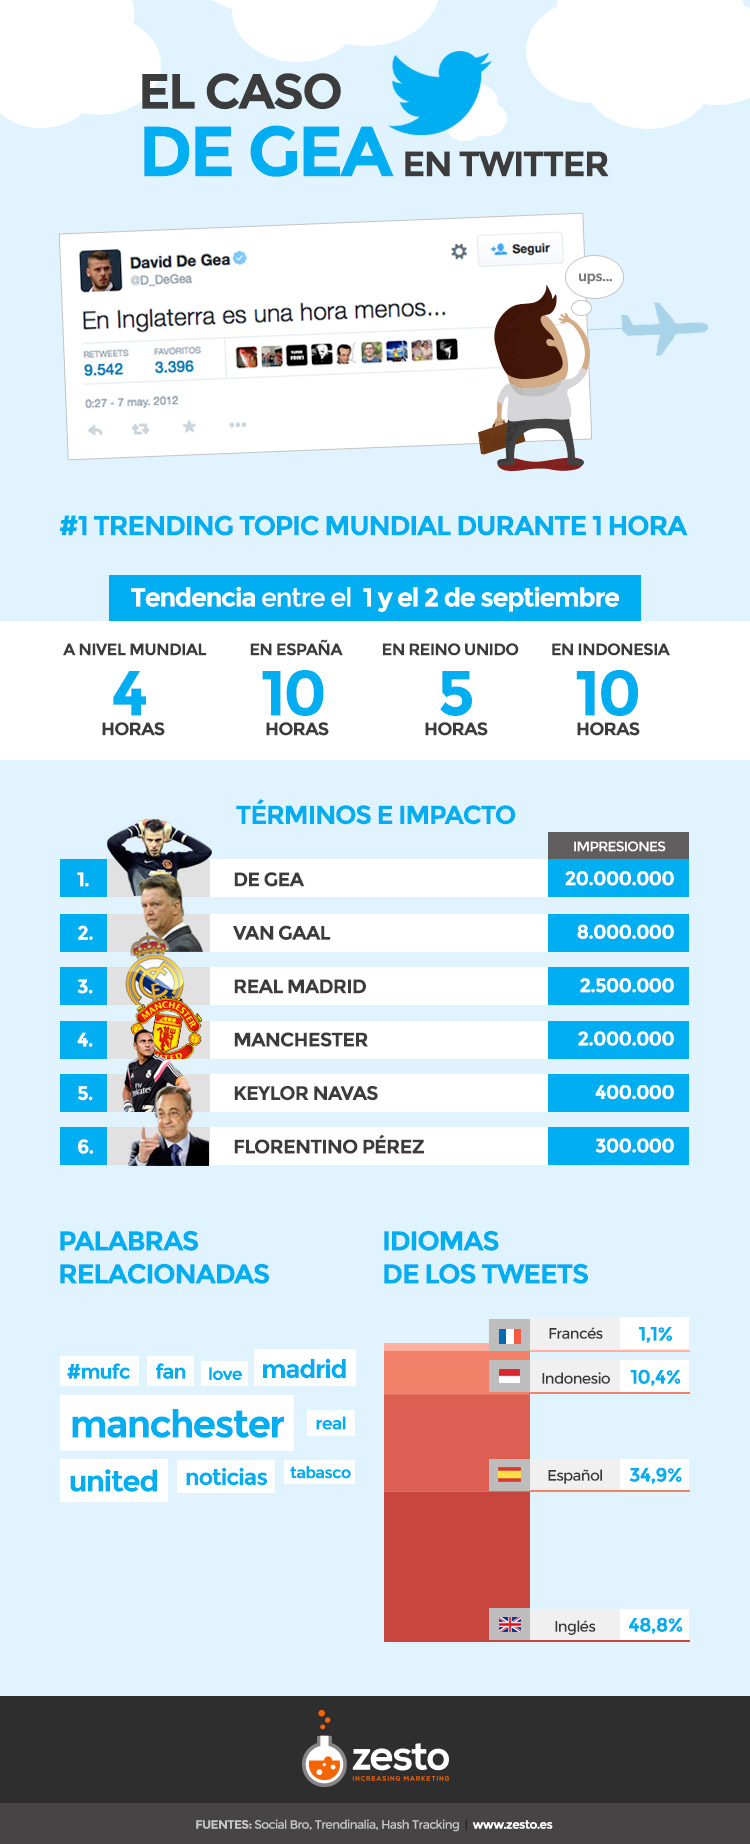 Real Madrid y Manchester